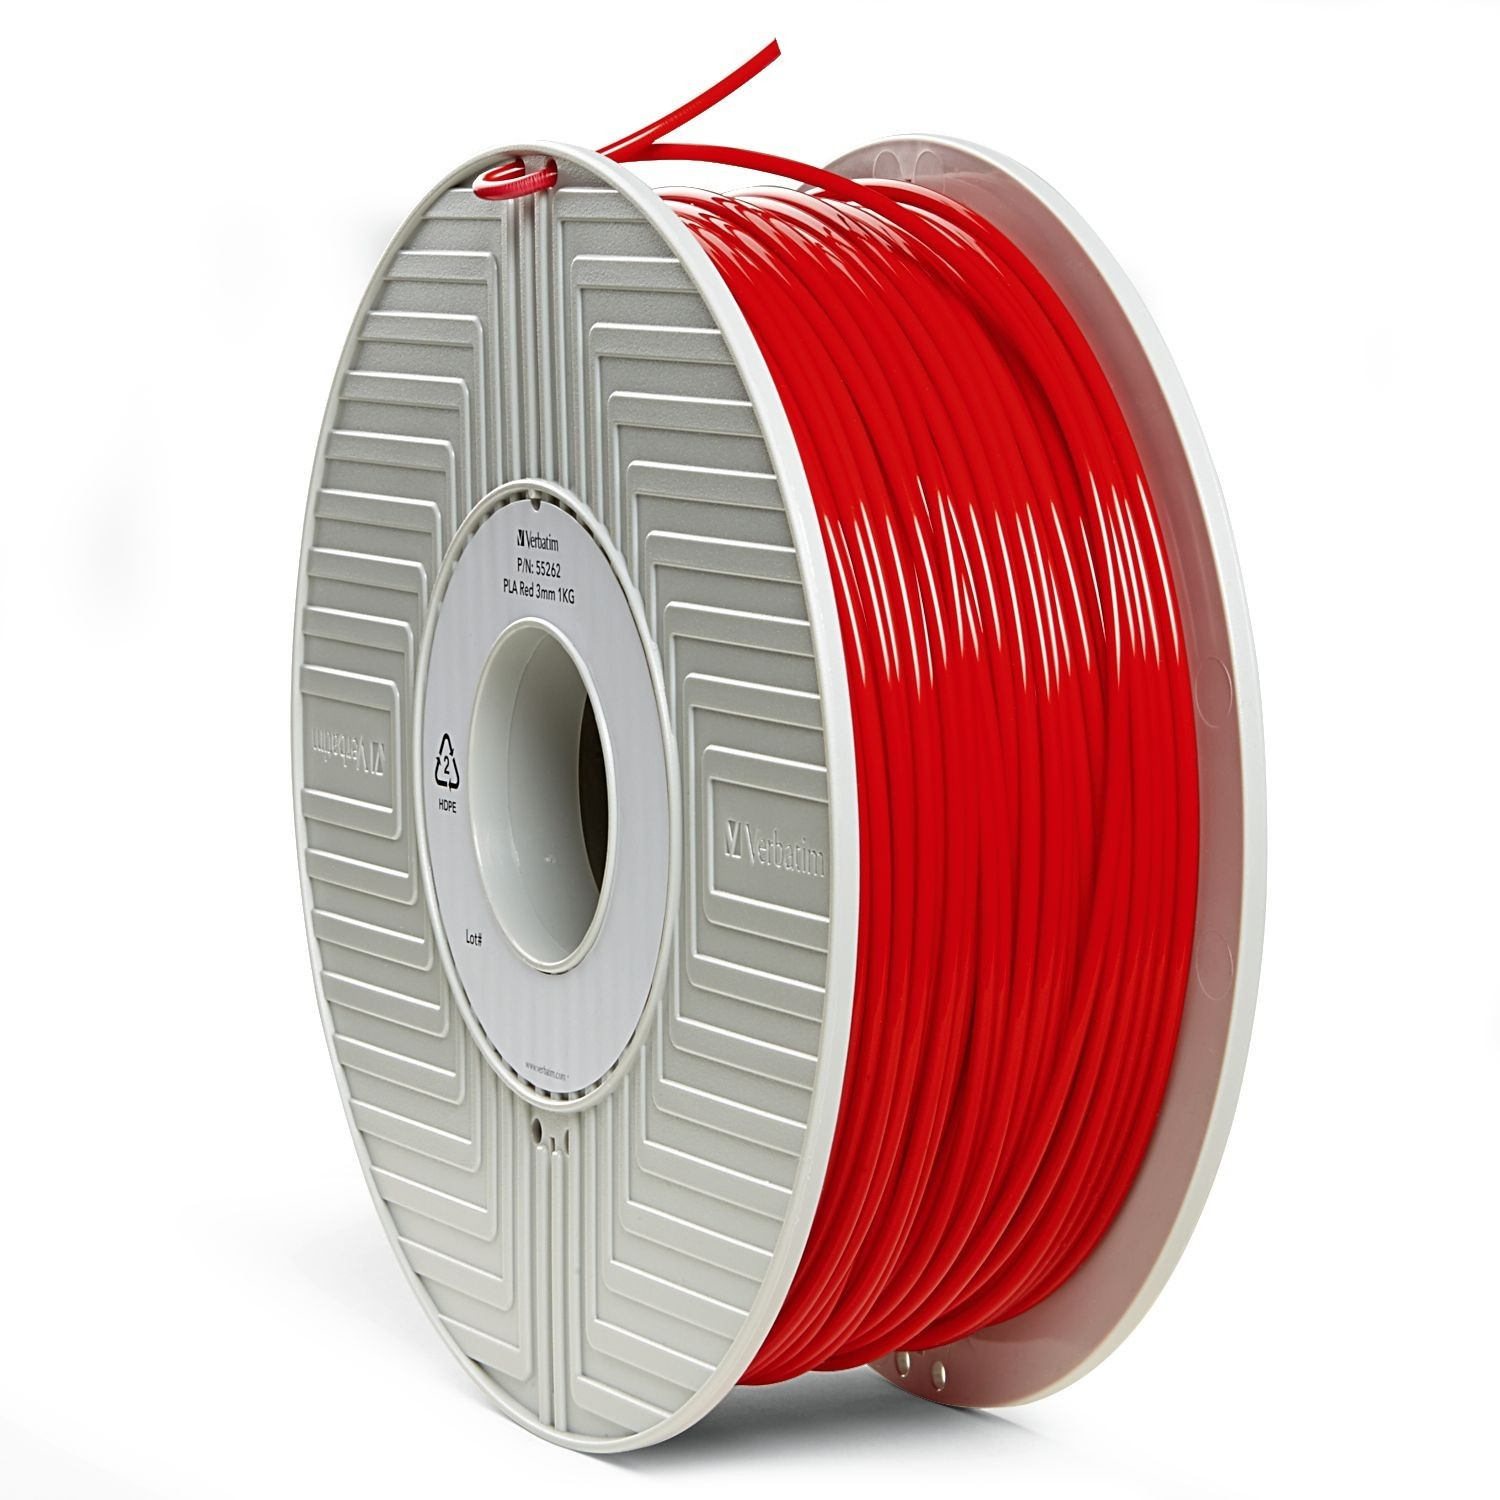 Verbatim 3D Printer PLA 3.00mm Filament - 1kg Reel (Red) image